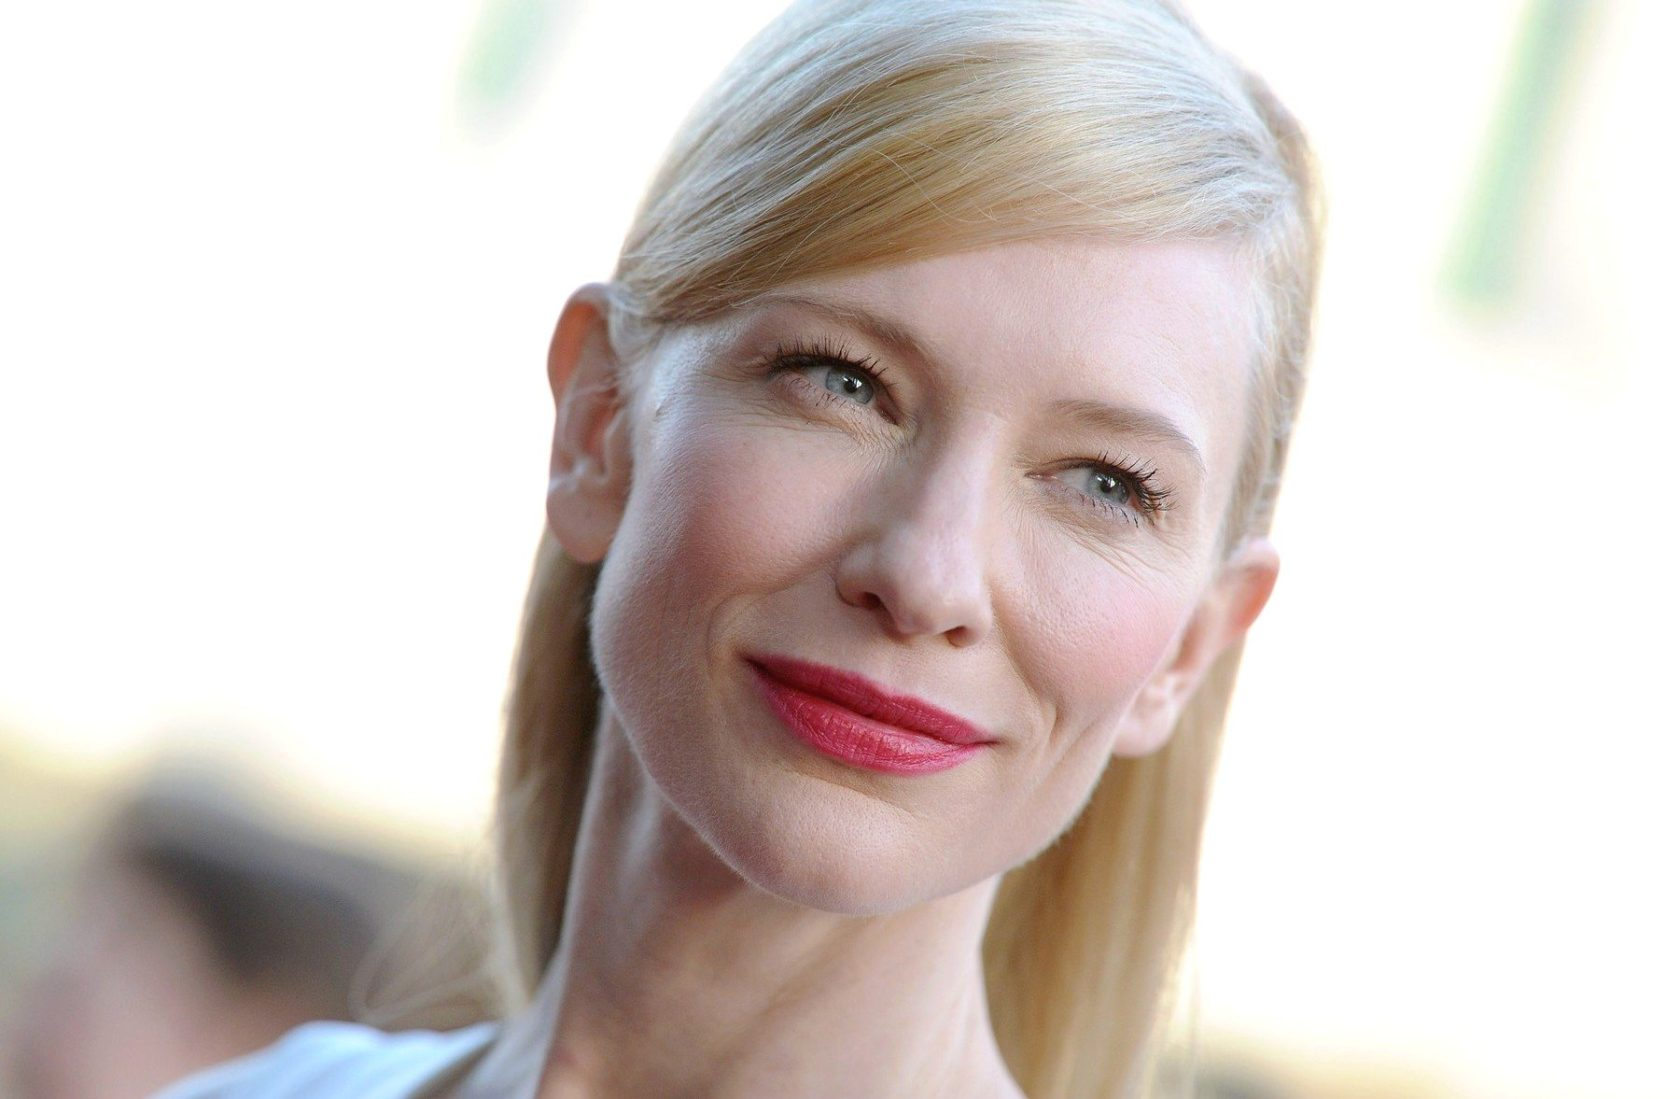 "Los Angeles Premiere of ""Blue Jasmine"". Academy of Motion Pictures Arts and Sciences, Beverly Hills, CA. July 24, 2013. Job: 130724A1. (Photo by Axelle Woussen/Bauer-Griffin) Pictured: Cate Blanchett., Image: 167159397, License: Rights-managed, Restrictions: 015, Model Release: no, Credit line: Profimedia, Bauer Griffin"